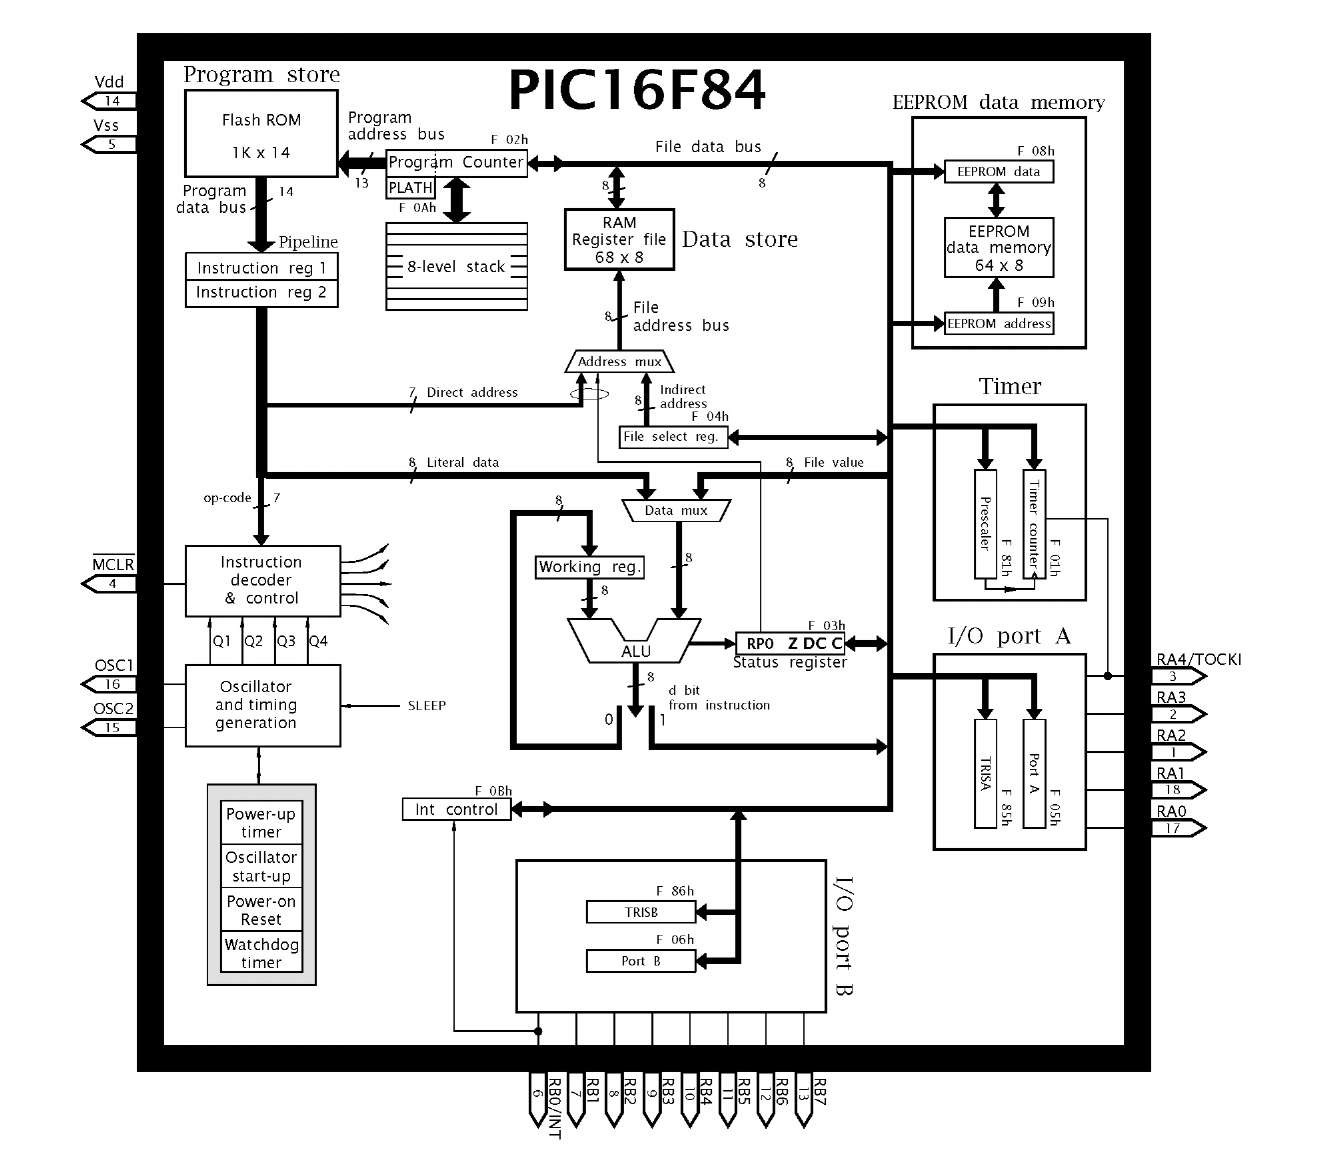 The Pic16f84 Microcontroller Part 1 Frequency Counter Is Built Around A For Architecture Of